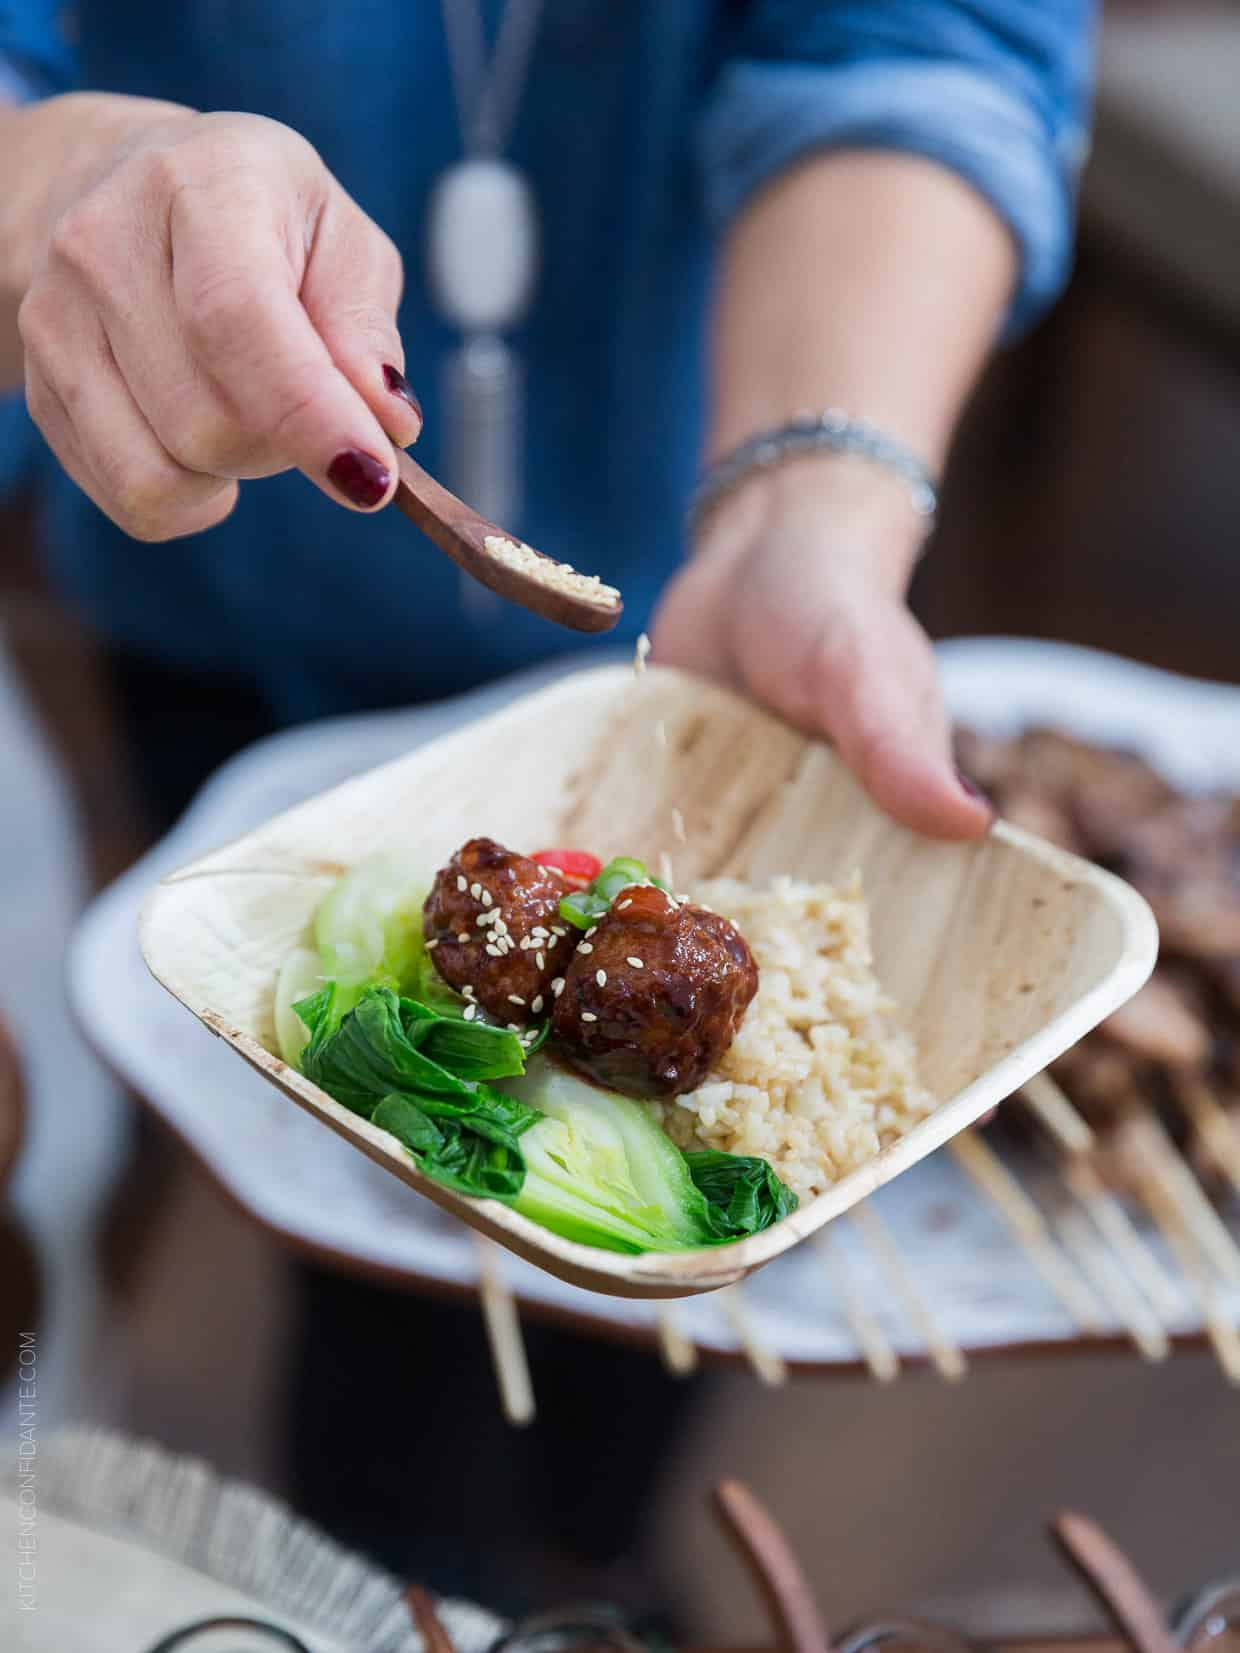 Shake things up at your next big game party with Big Game Bowl Recipes, including this Spicy Korean-style Meatball Bowl!